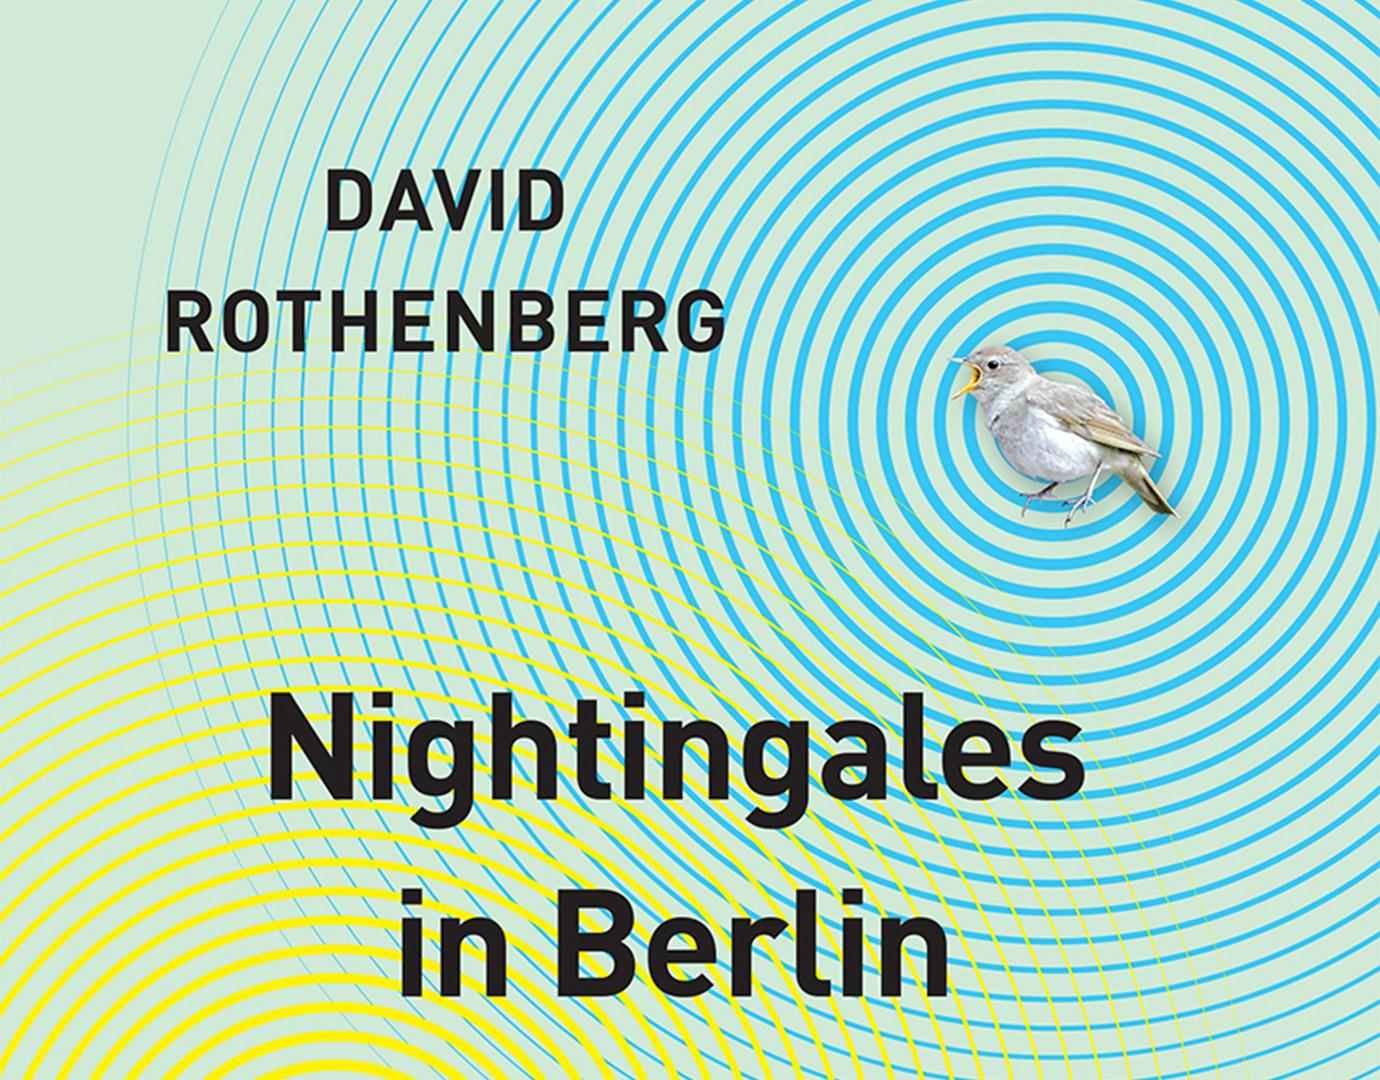 David Rothenberg improvises with Nightingales In Berlin - The Wire